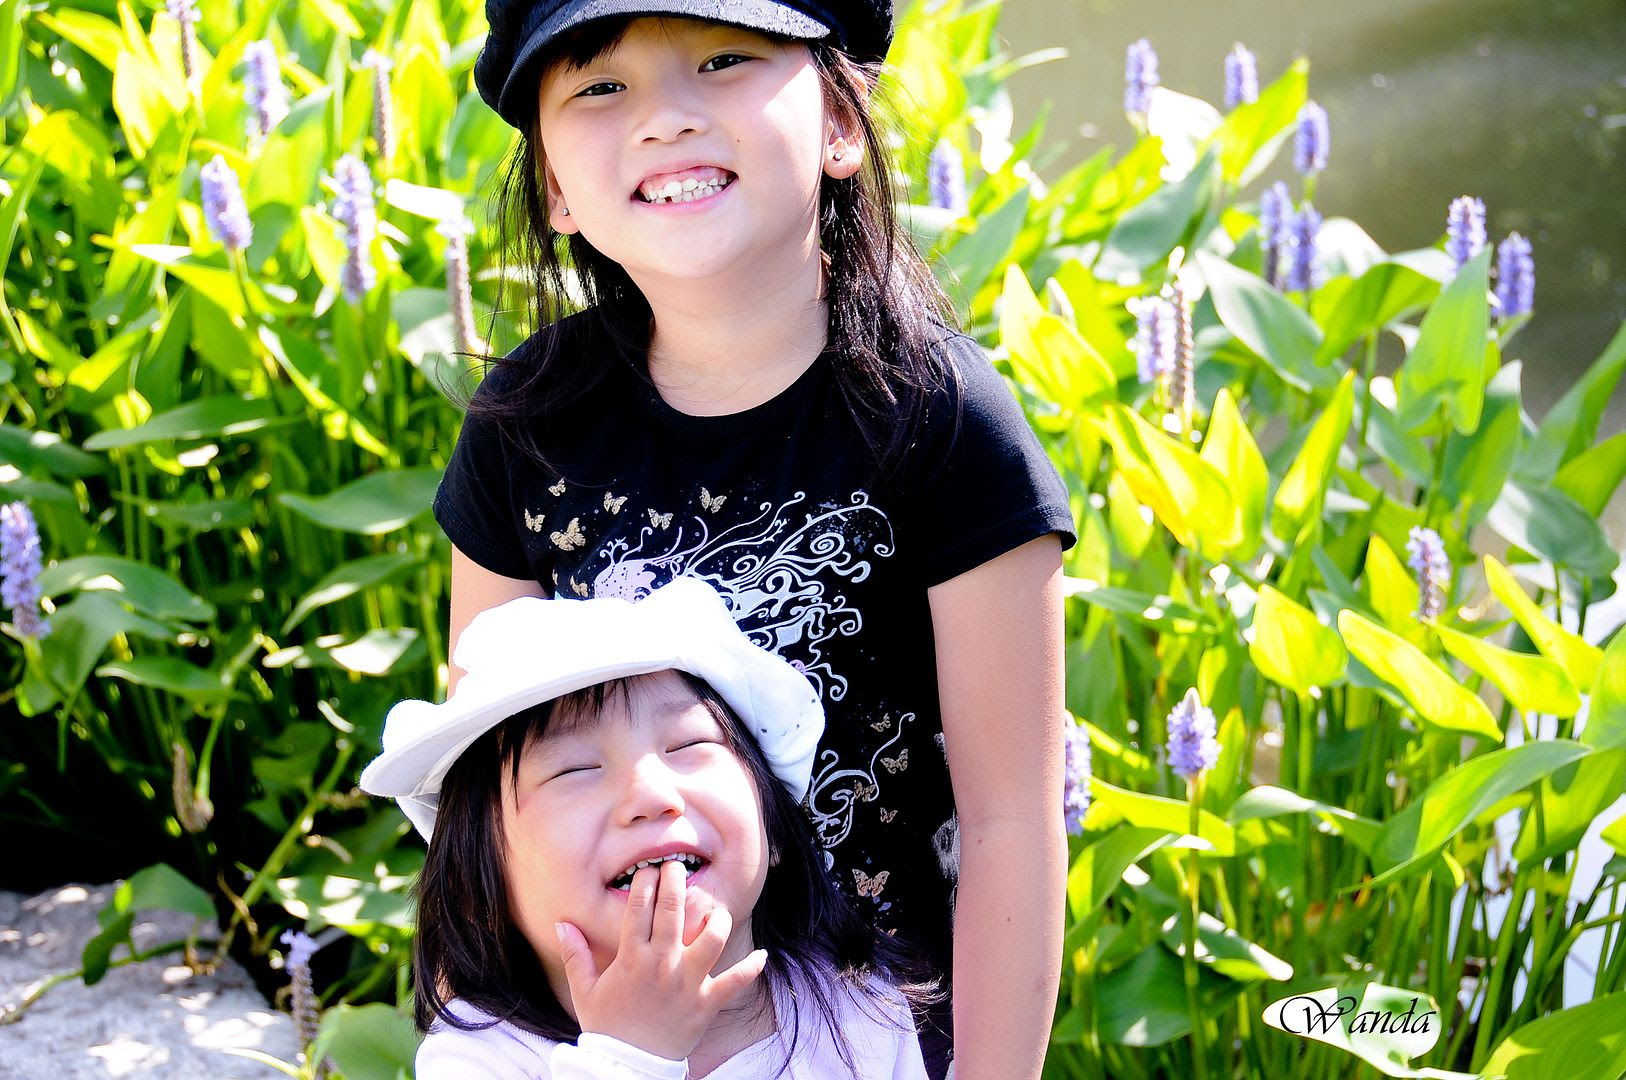 9/15/10, Dahlia & Milana - goofin' off. (Sometimes it's good to sacrifice picture quality for a perfect moment.)